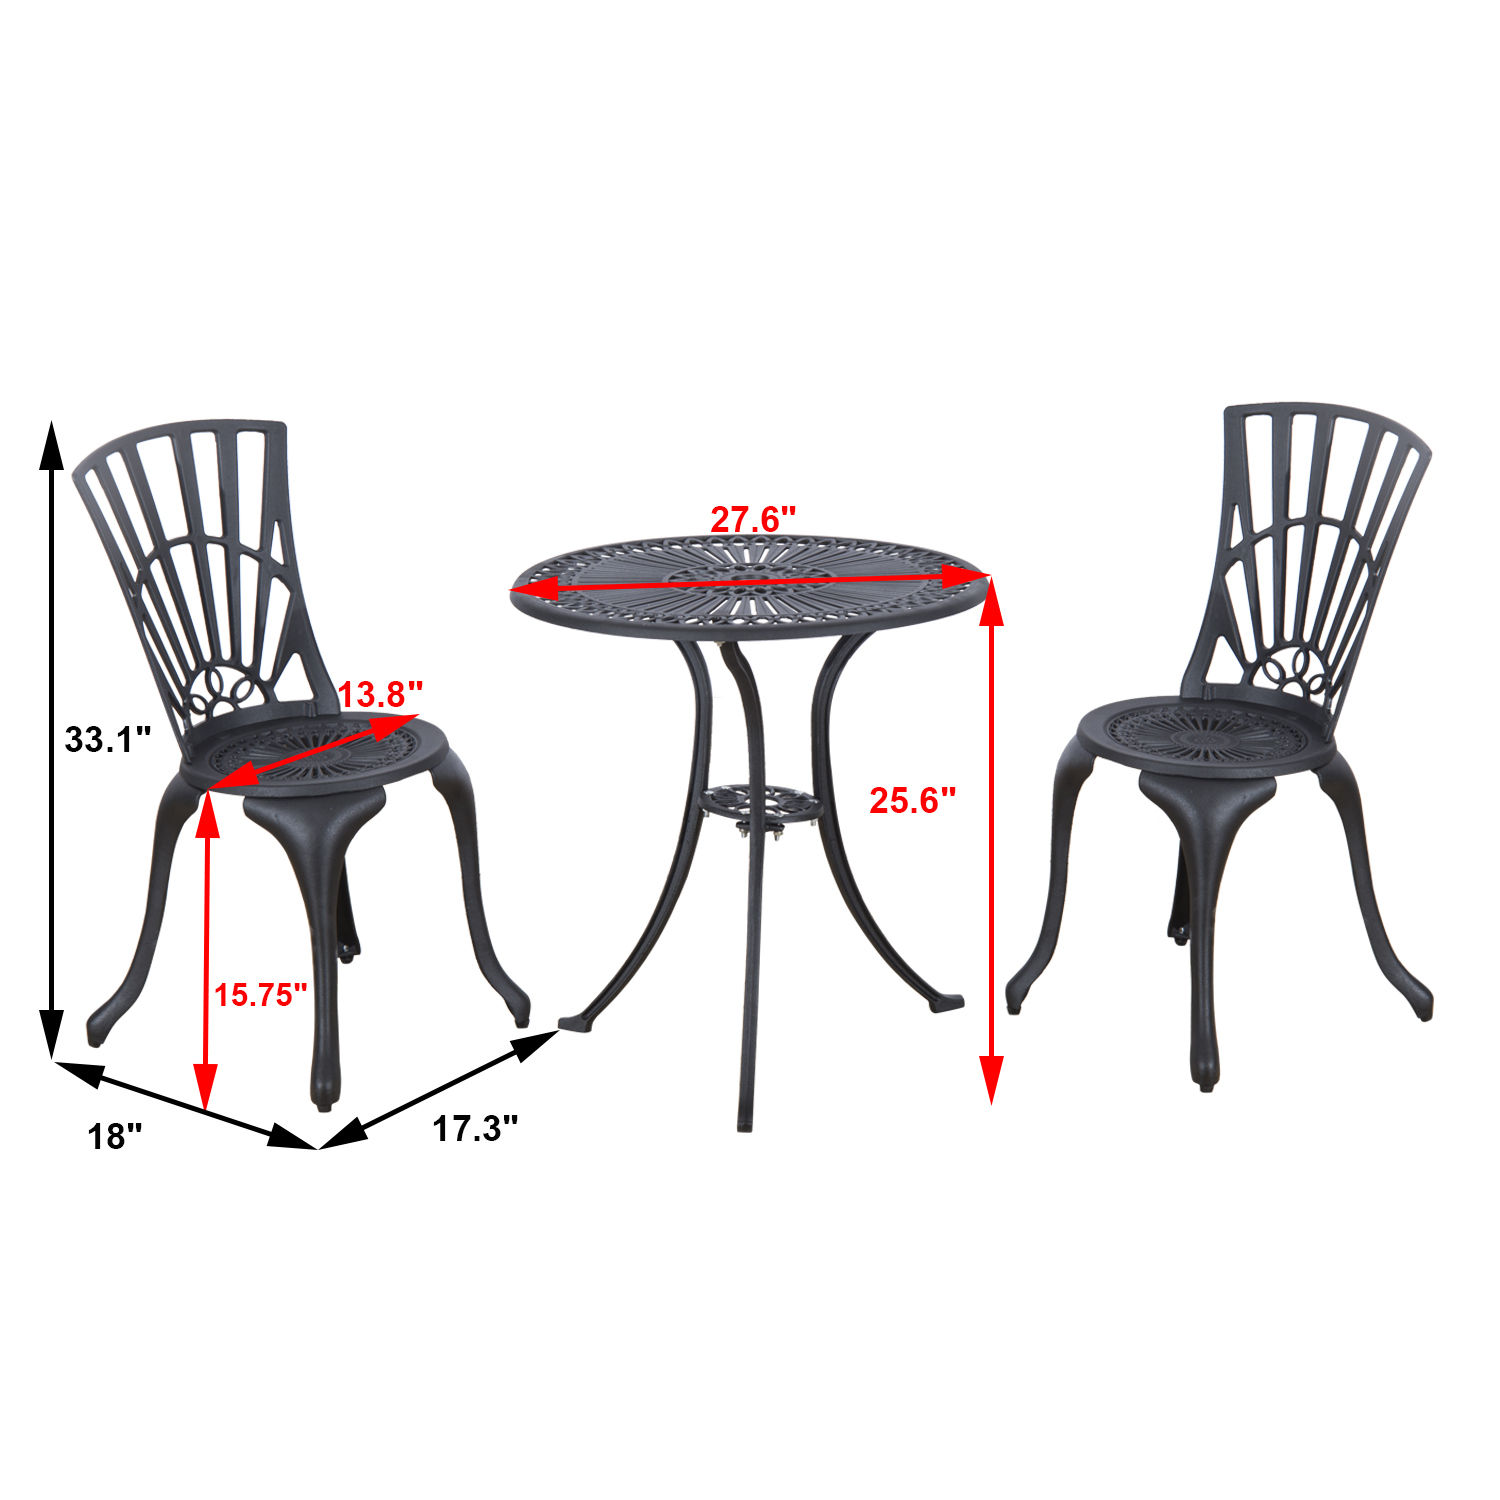 Black Patio Chairs 3pc Cast Aluminum Patio Bistro Dining Set Outdoor